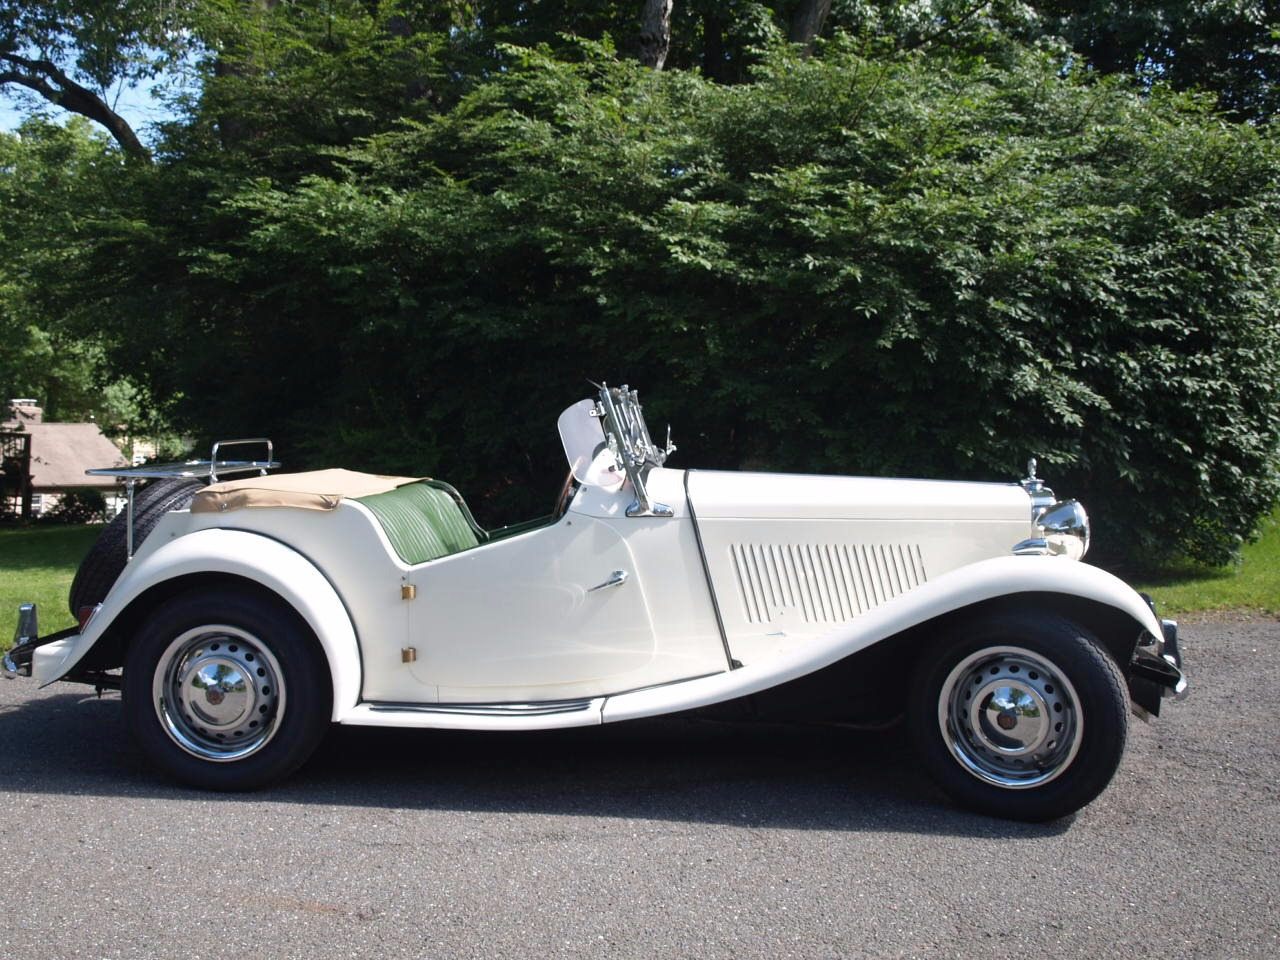 1951 mg td stock 1951 mg td for sale near new york ny ny mg dealer. Black Bedroom Furniture Sets. Home Design Ideas